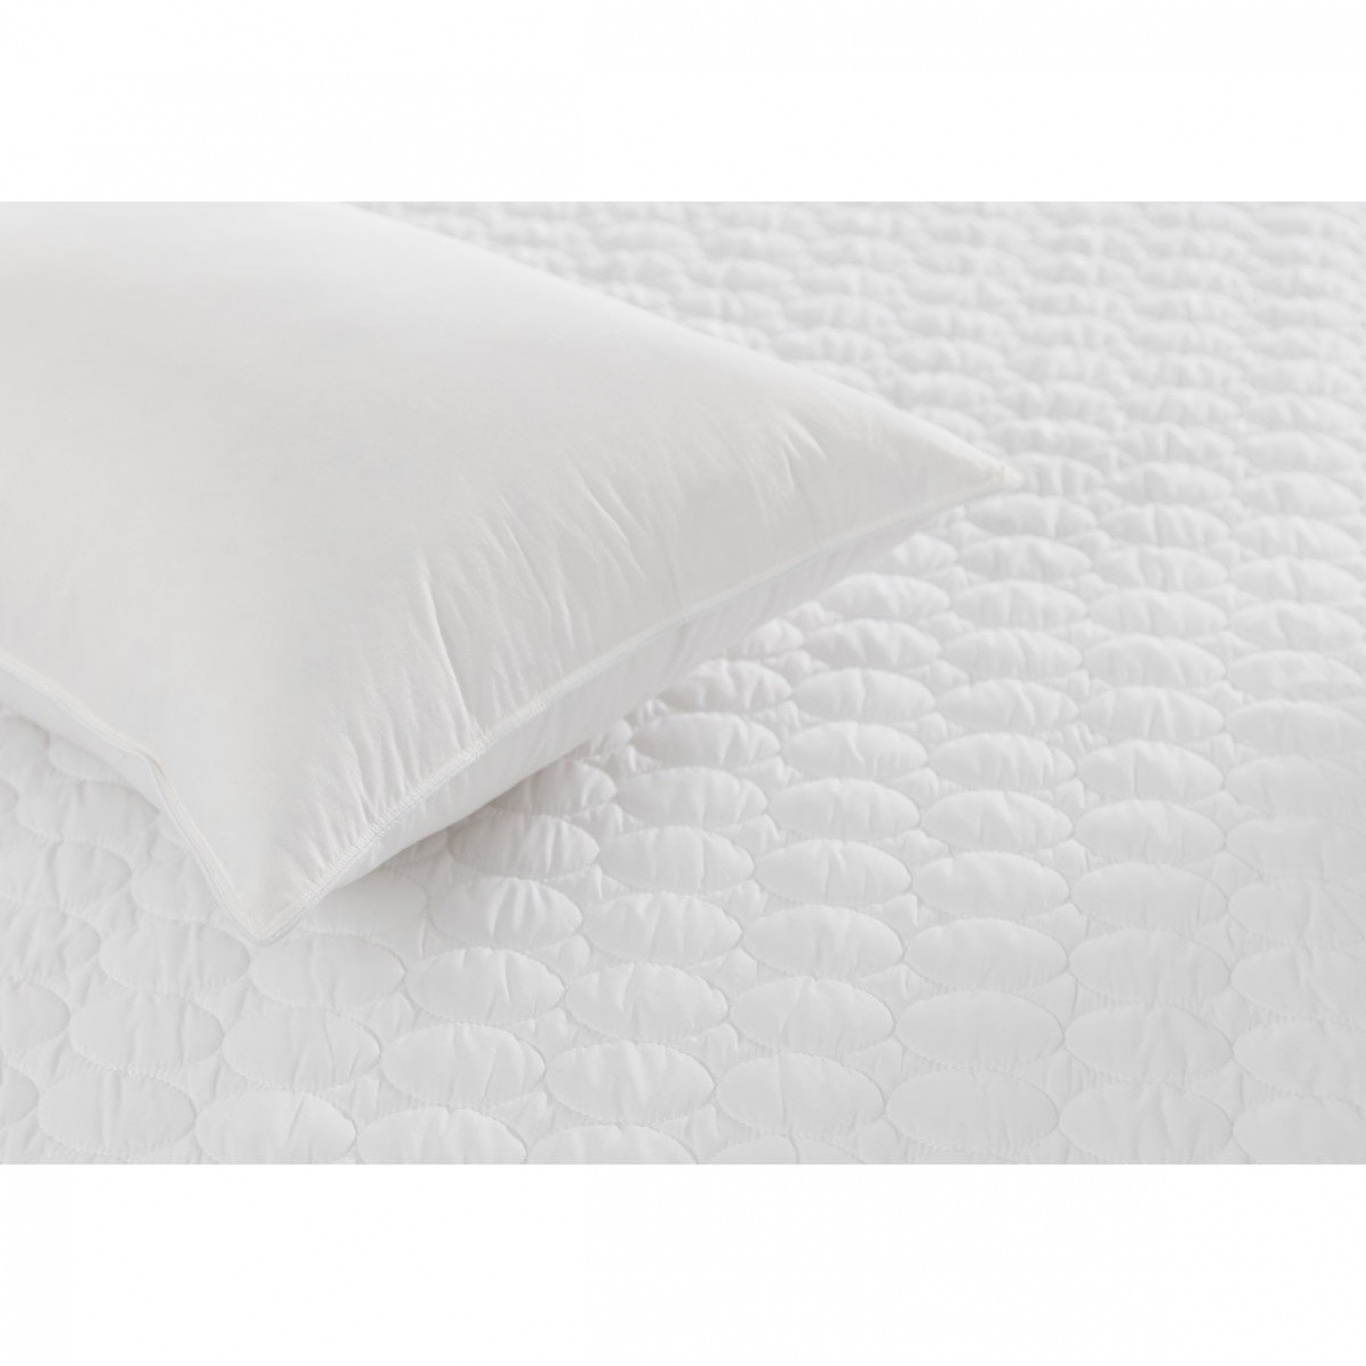 Image of Quilted Luxury Waterproof King Mattress Protector